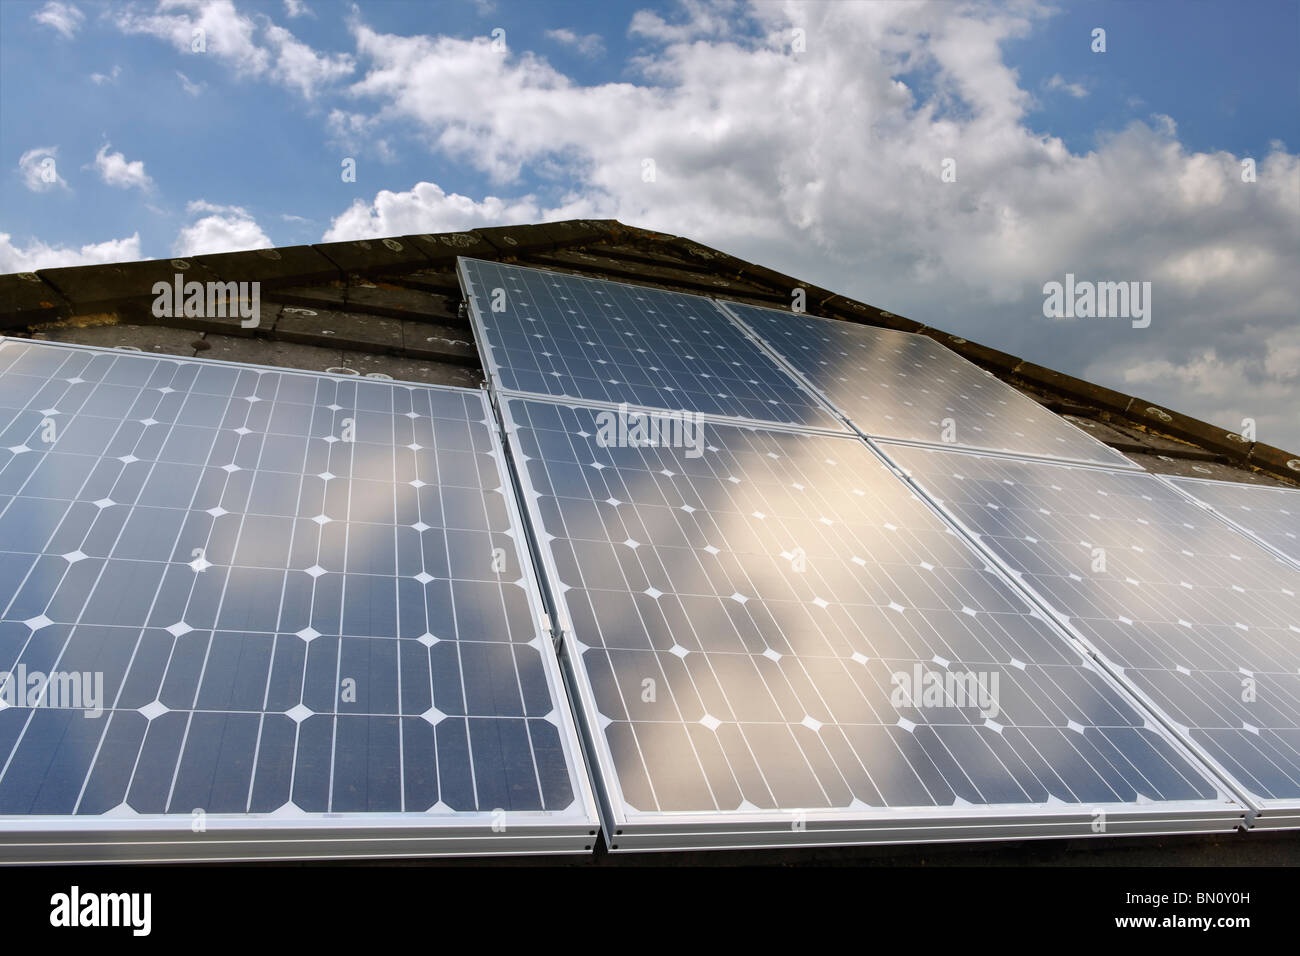 Solar Power. Photovoltaic cells on a domestic house roof in the UK - Stock Image